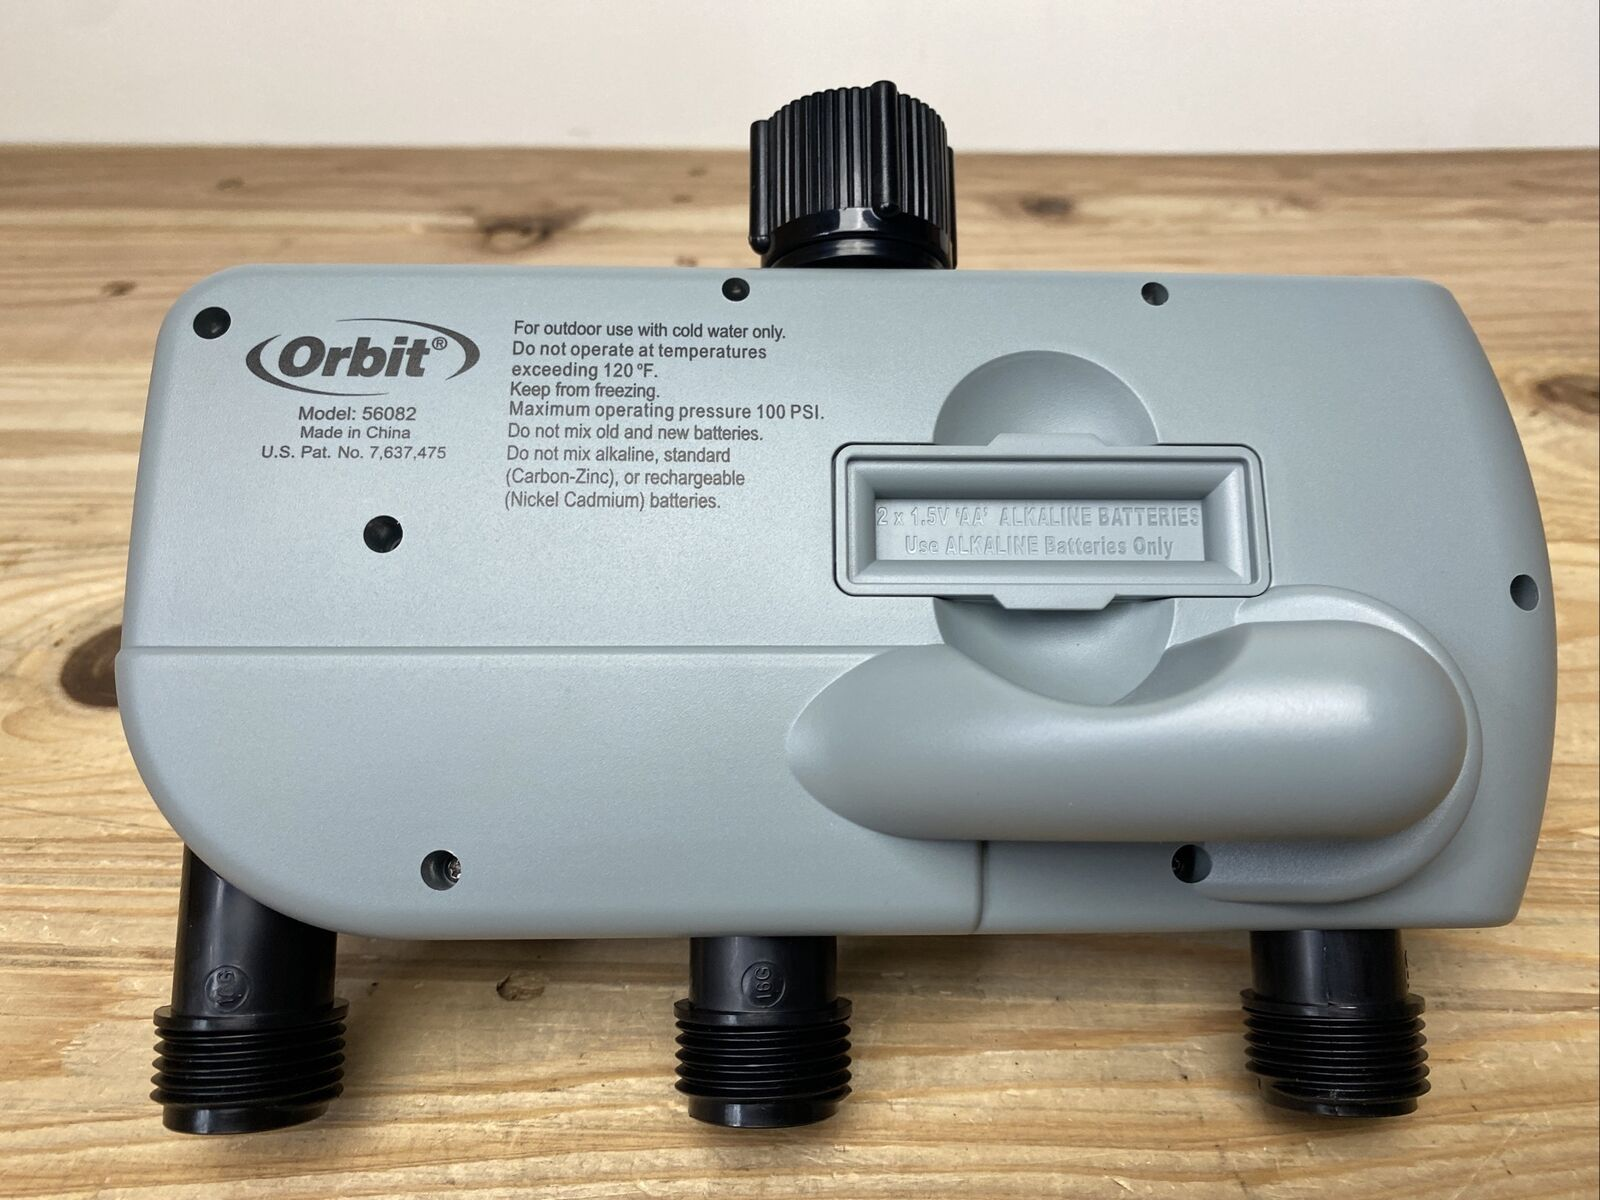 Orbit 56082 3-Outlet Programmable Hose Faucet Timer with rain delay